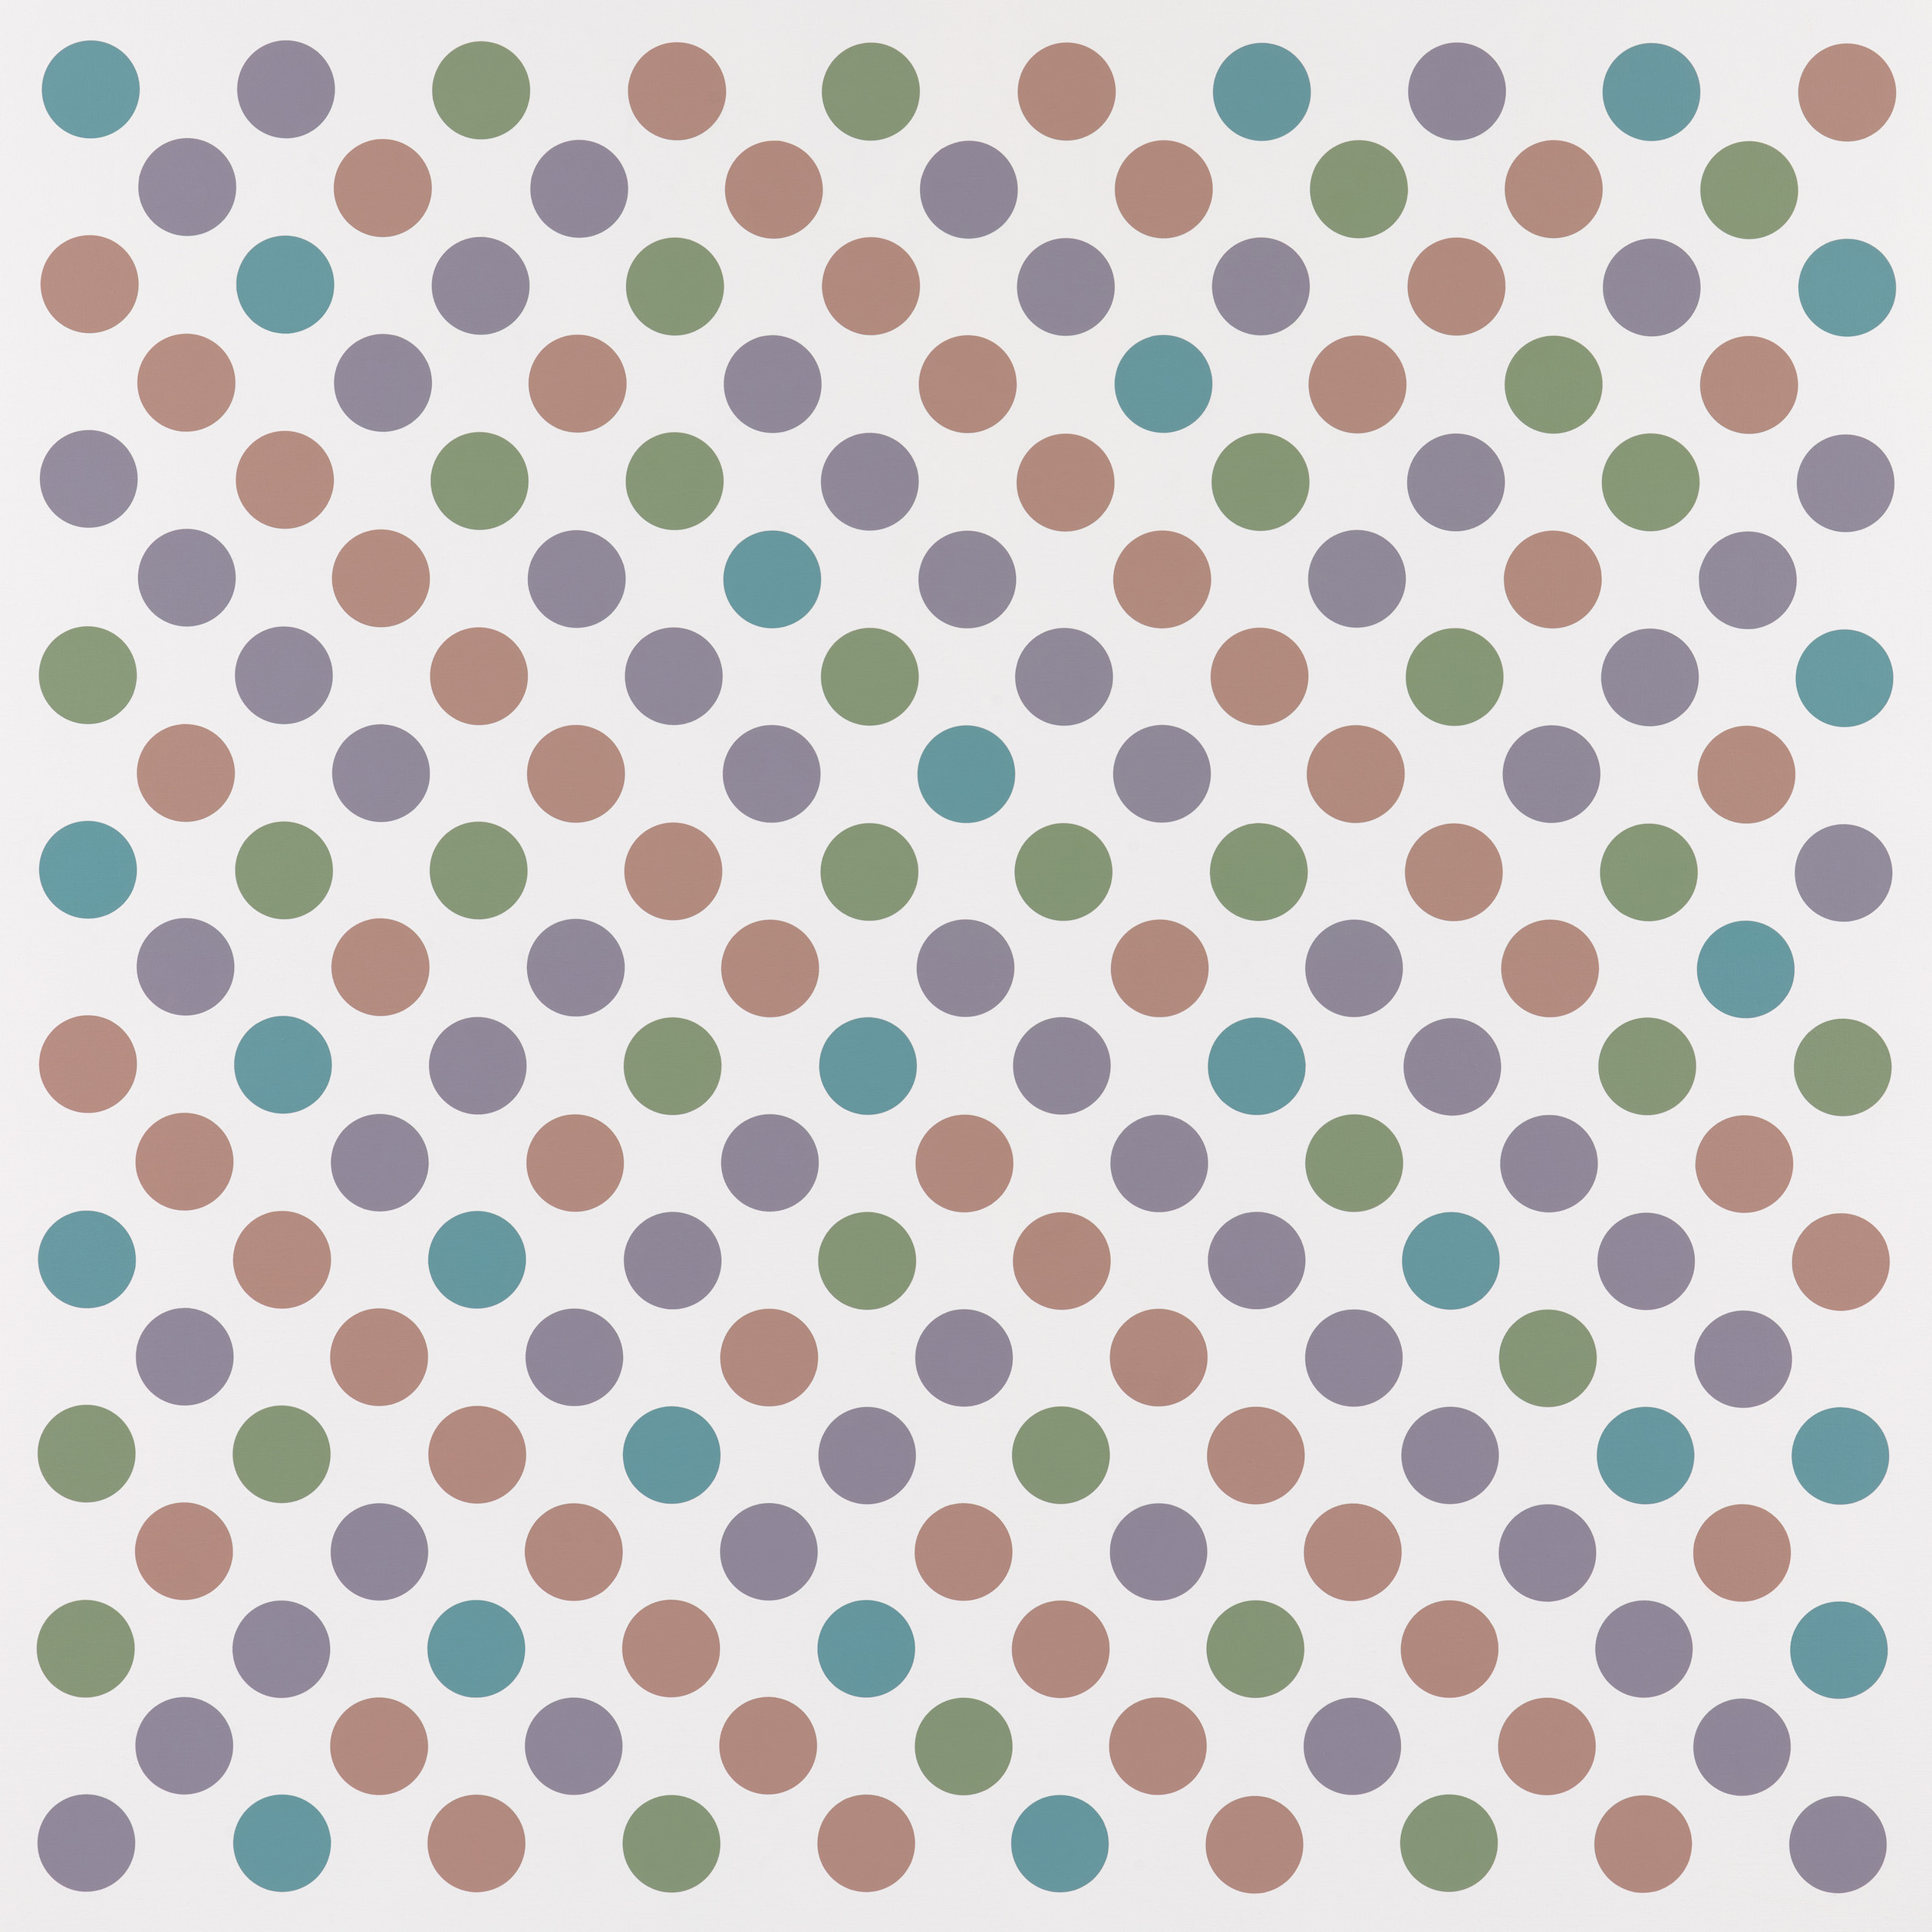 See How British Artist Bridget Riley's Paintings 'Caress and Soothe' the Eye in Her New Show at David Zwirner London